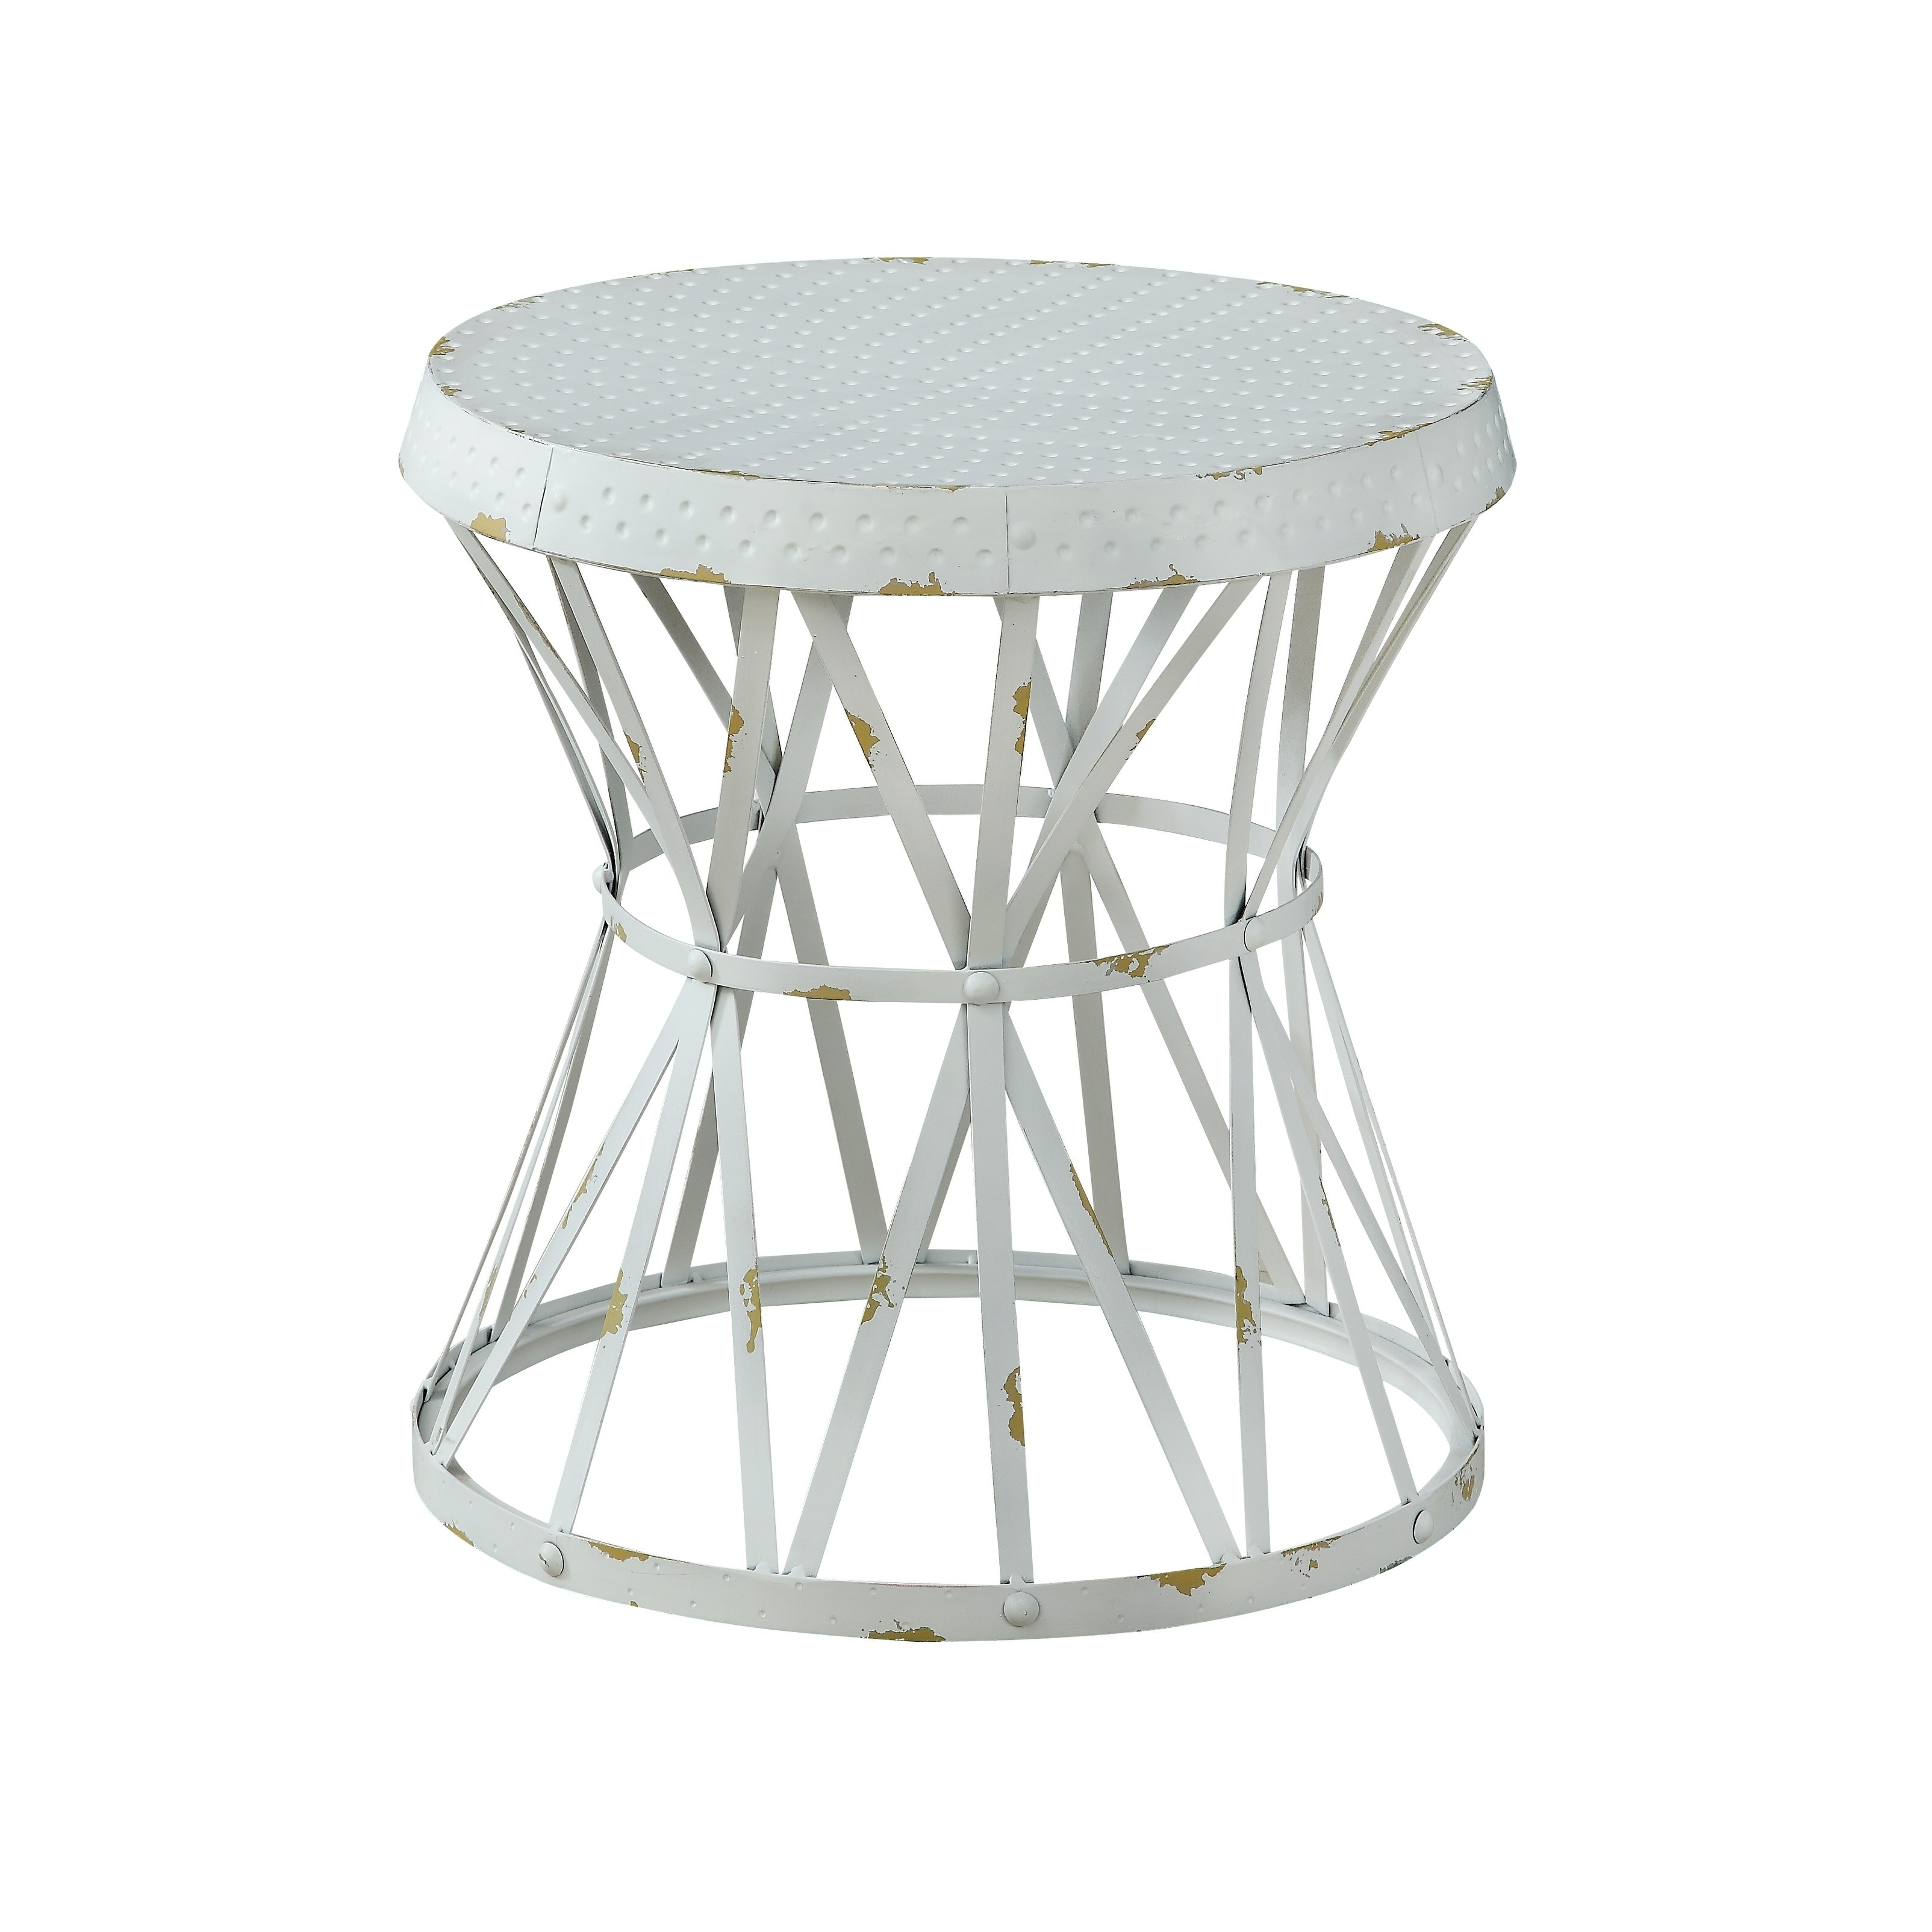 treasure trove reef weathered white small round accent table gray free shipping today bronze coffee glass top patio cover fancy bedside tables pipe restonic mattress covers for